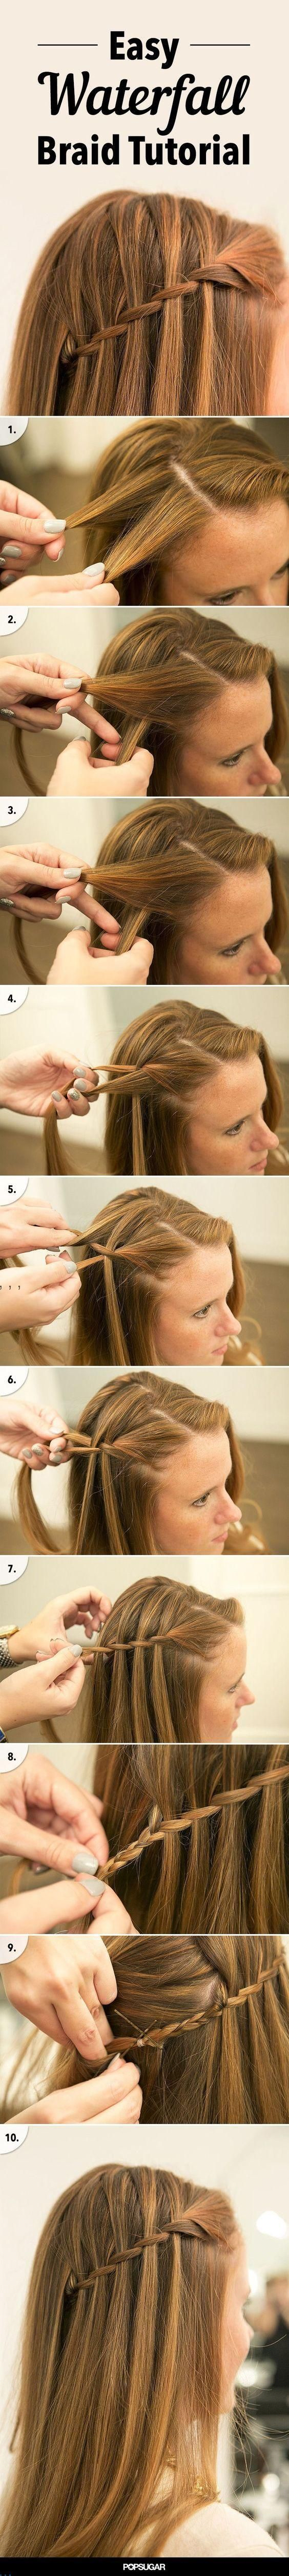 New waterfall braid do it yourself pinterest girl hairstyles